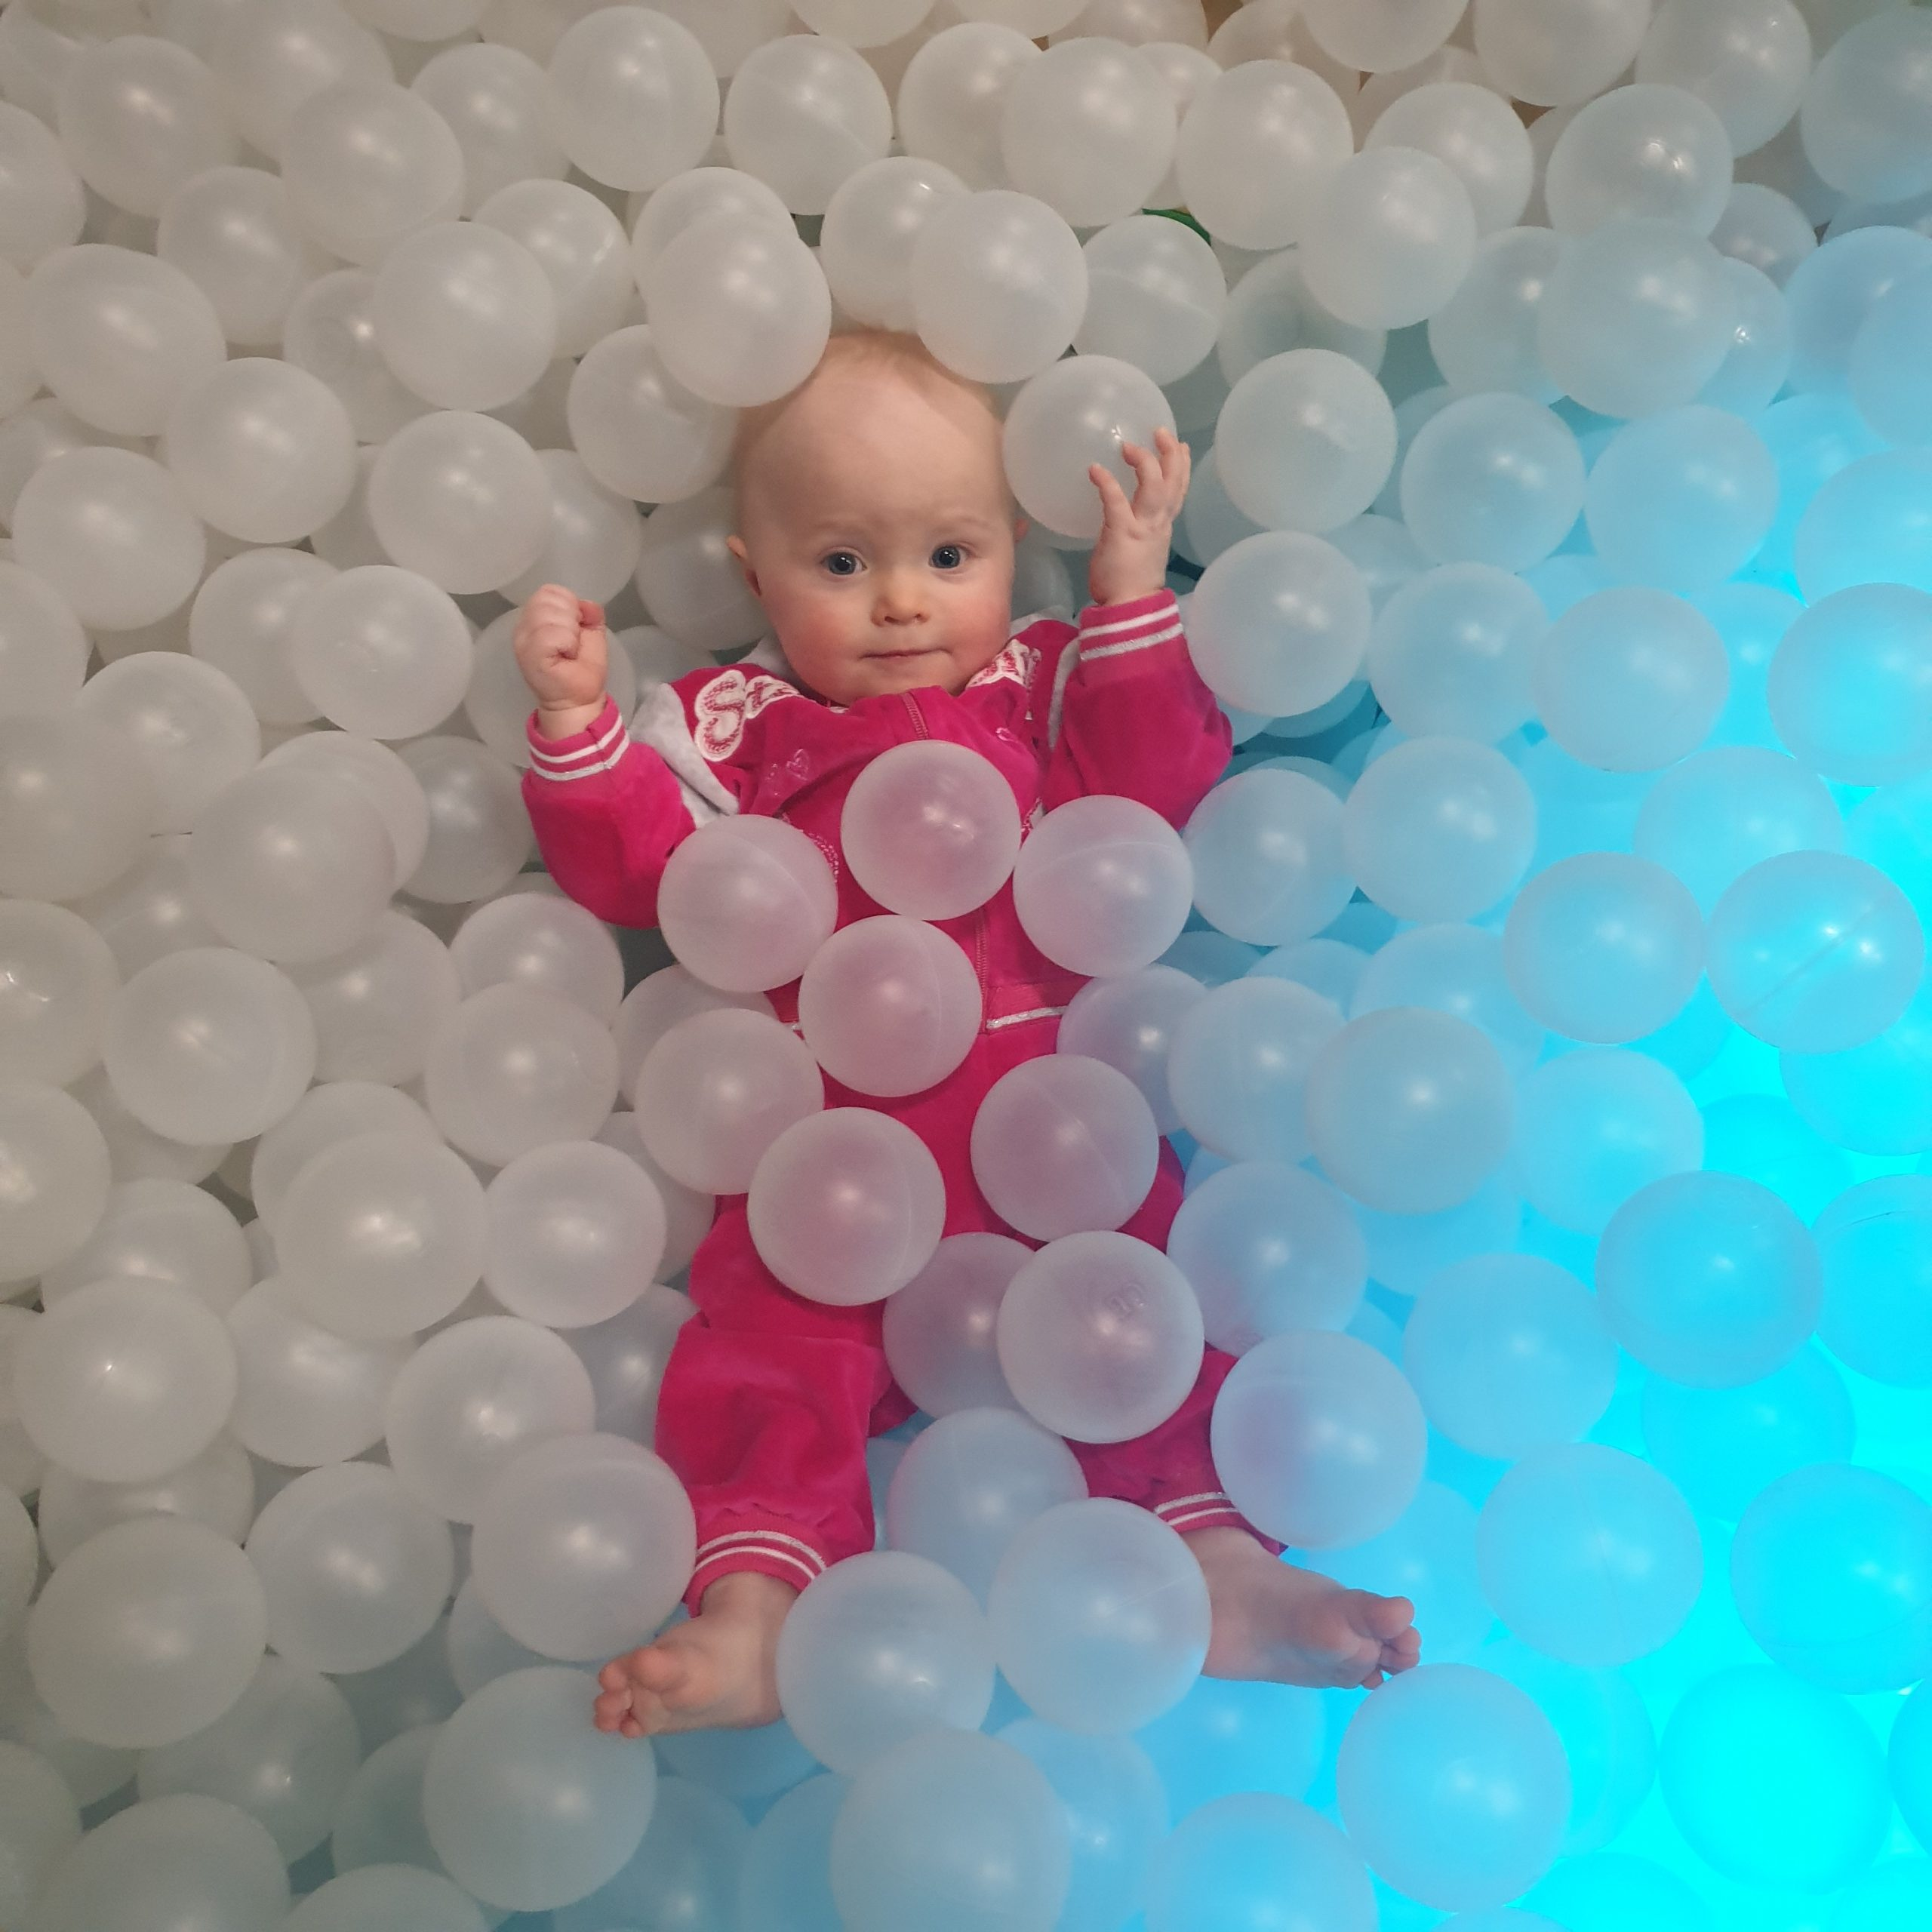 baby enjoys the family-friendly day in helsinki by playing in the ball pit